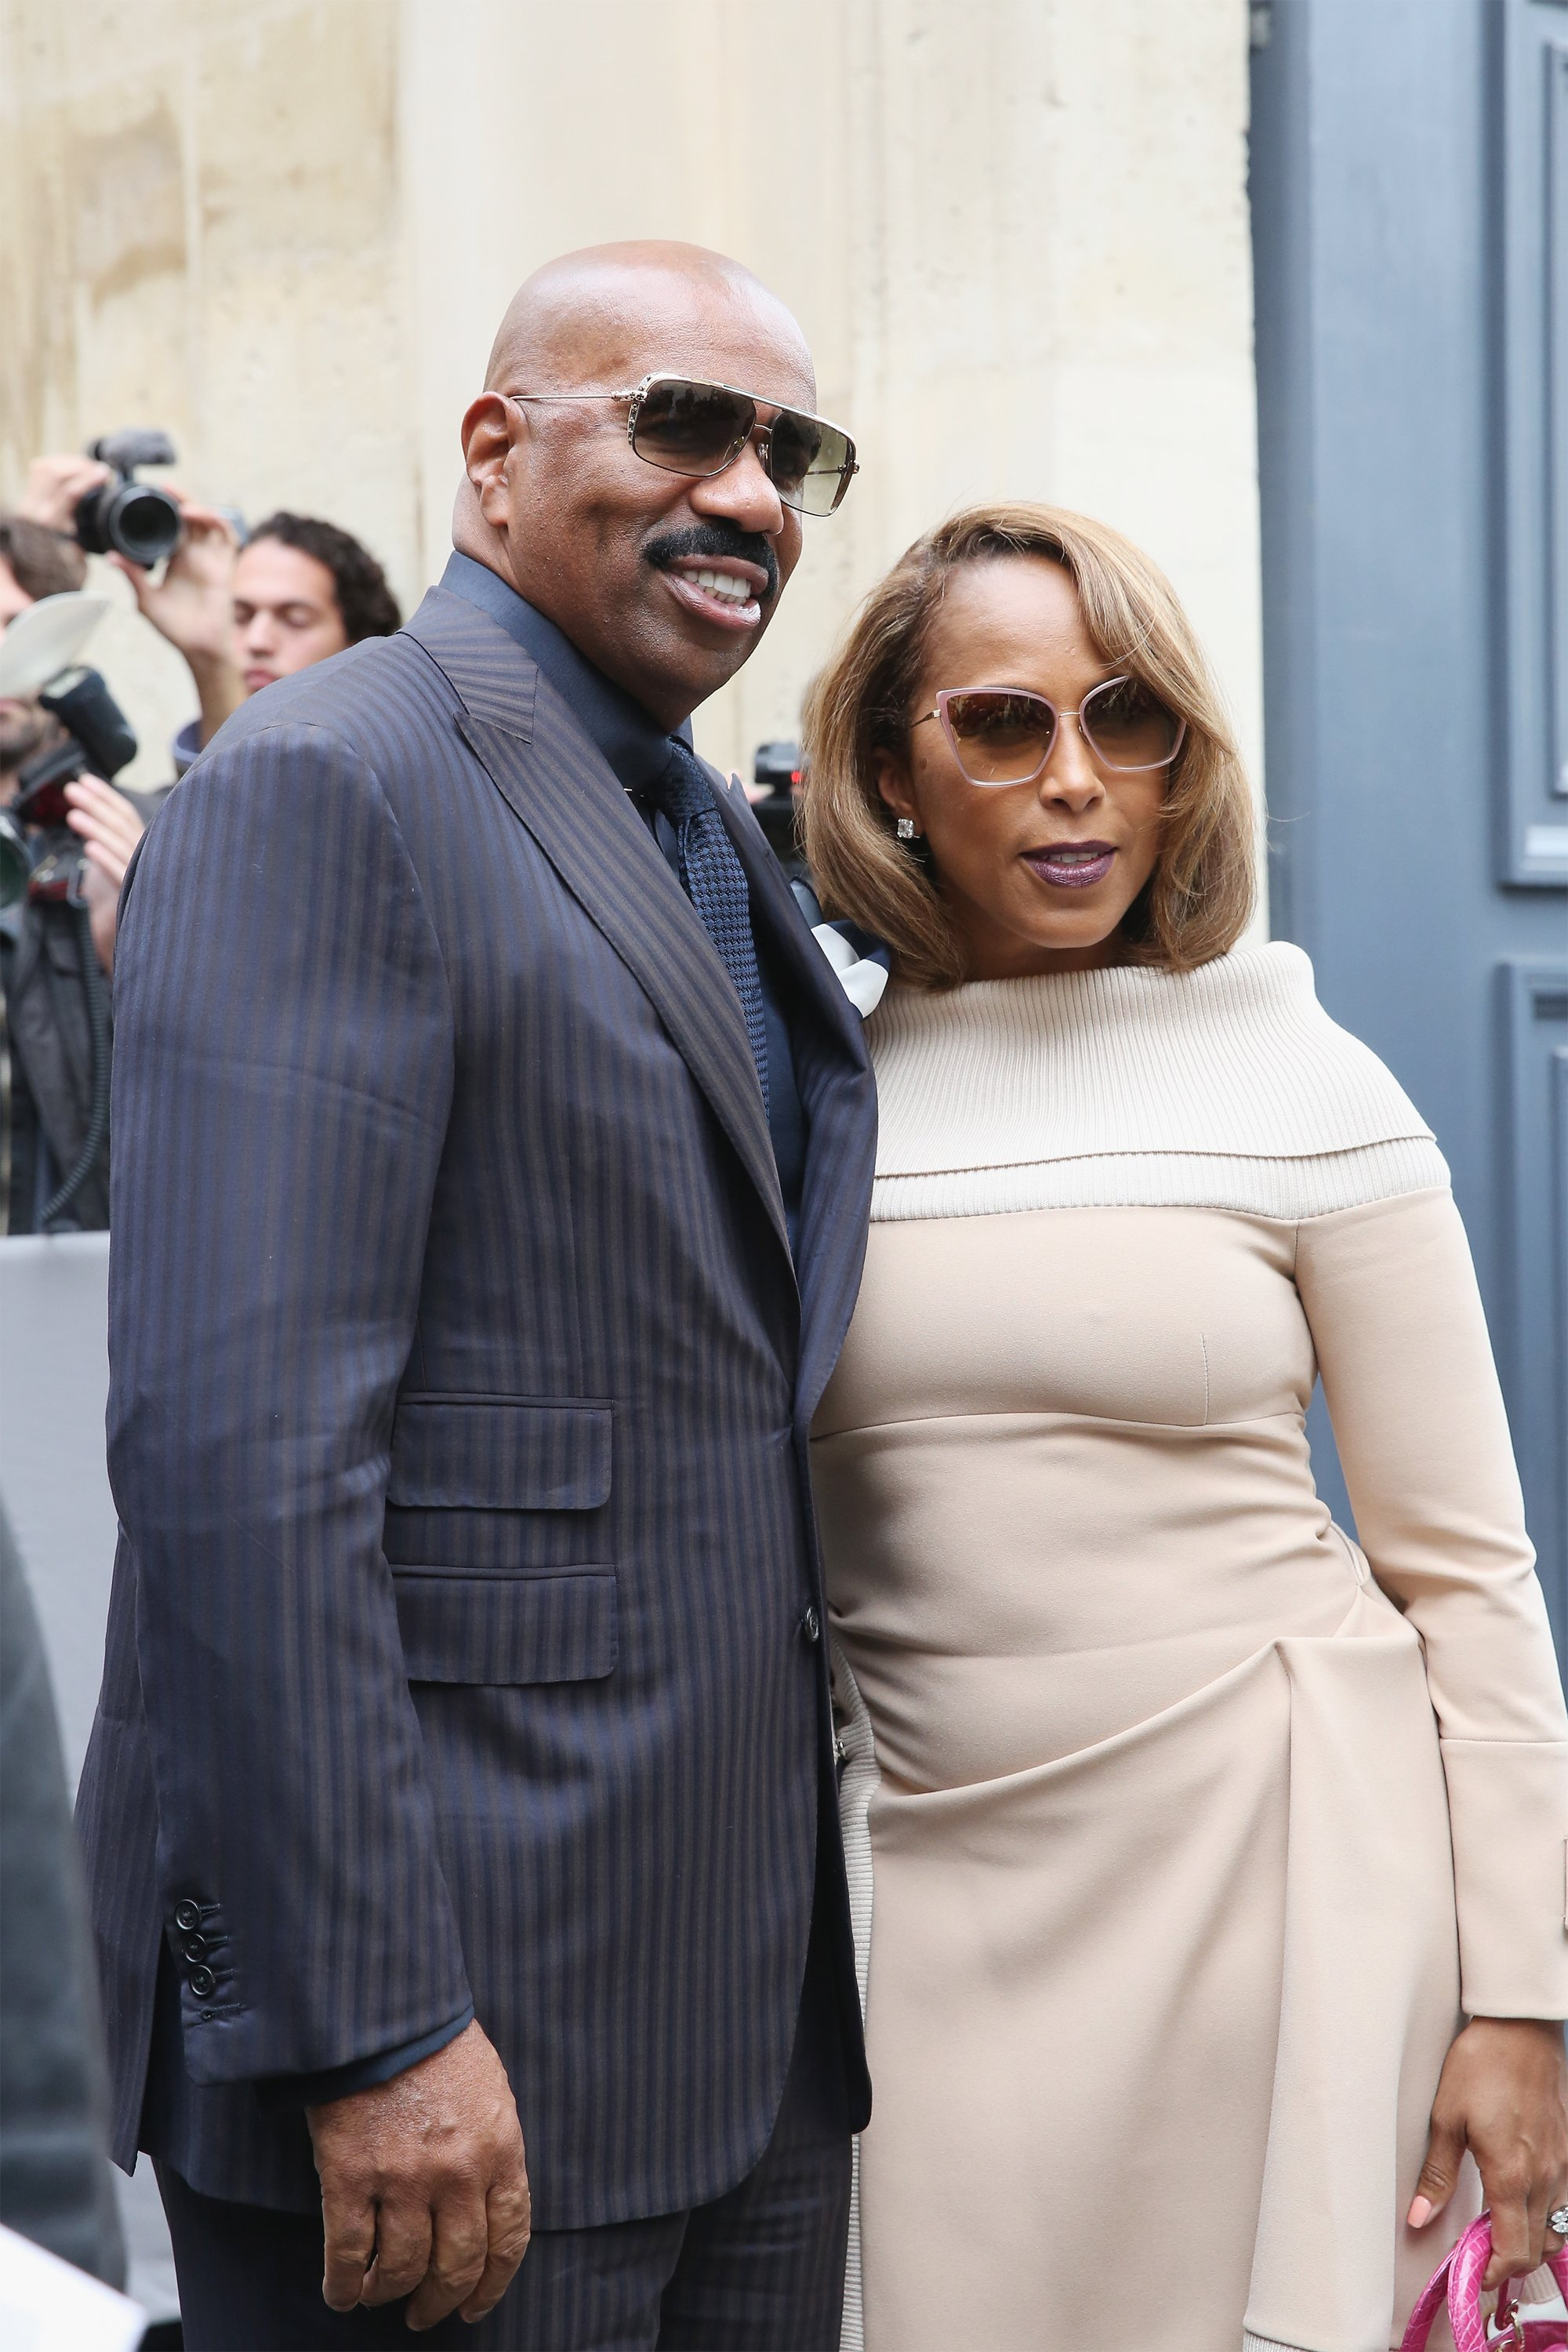 Steve & Marjorie Harvey during the Paris Fashion Week Womenswear Spring/Summer 2017 on Sept. 30, 2016 in Paris, France | Photo: Getty Images